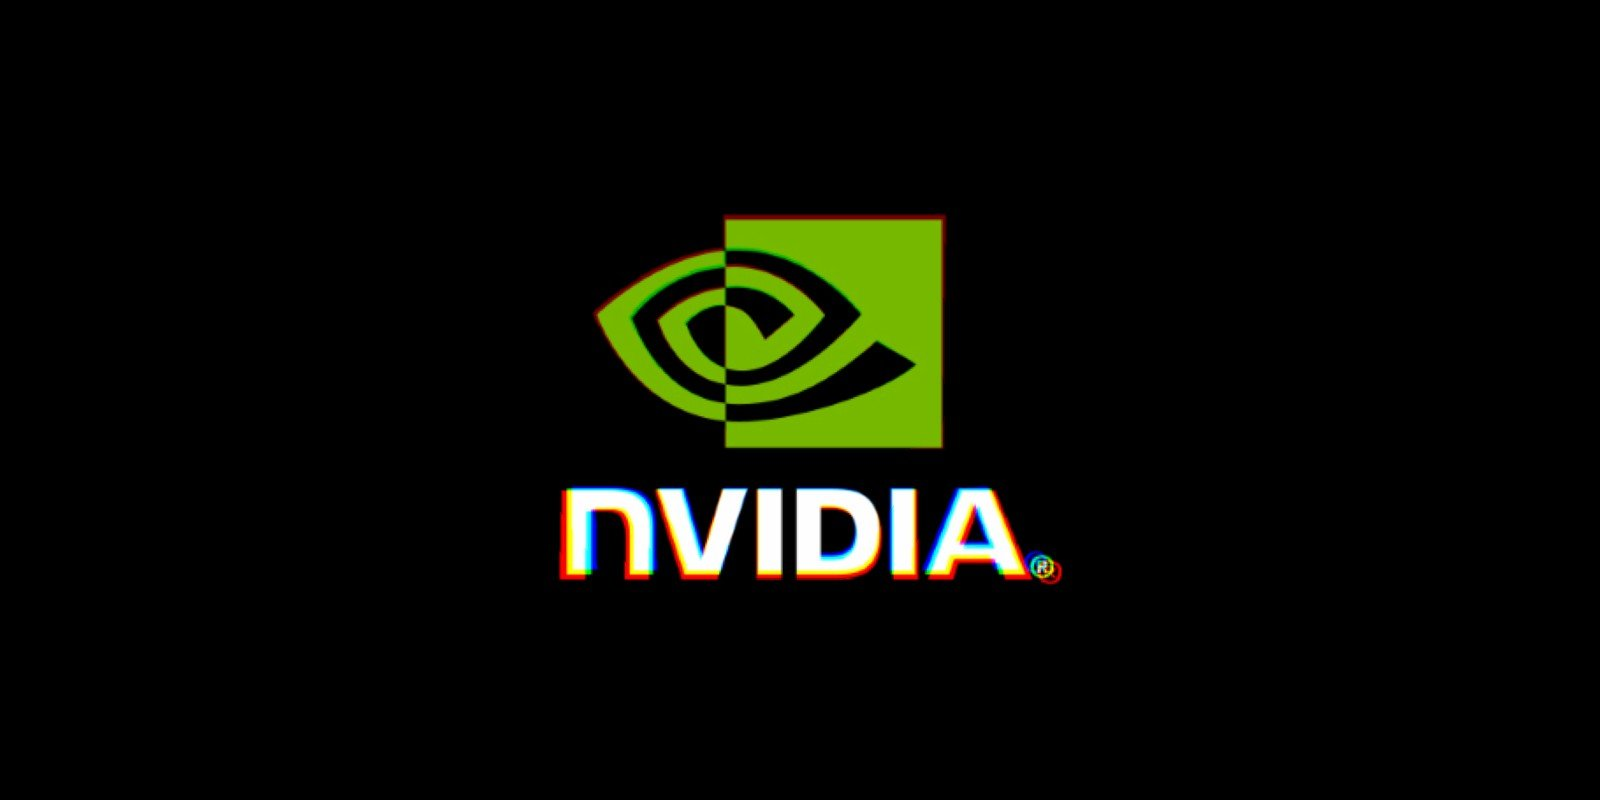 NVIDIA fixes high severity flaws affecting Windows, Linux devices